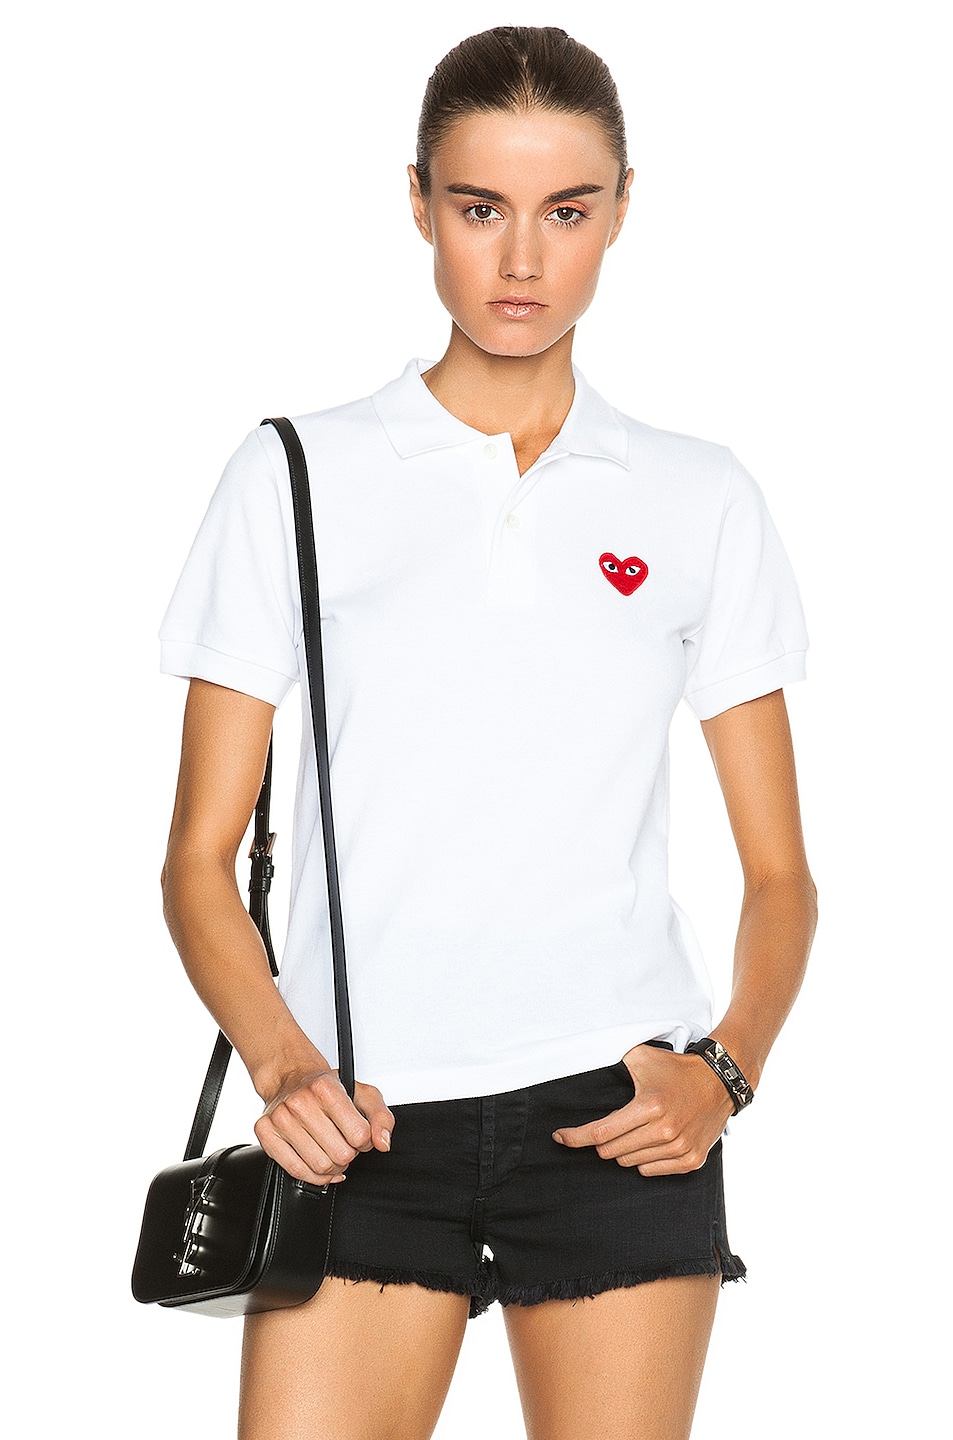 Cotton Polo with Red Emblem in White Comme Des Garçons Factory Outlet Sale Online Cheap Sale Enjoy Buy Cheap Purchase Newest Cheap Online X3Q1BEtPA